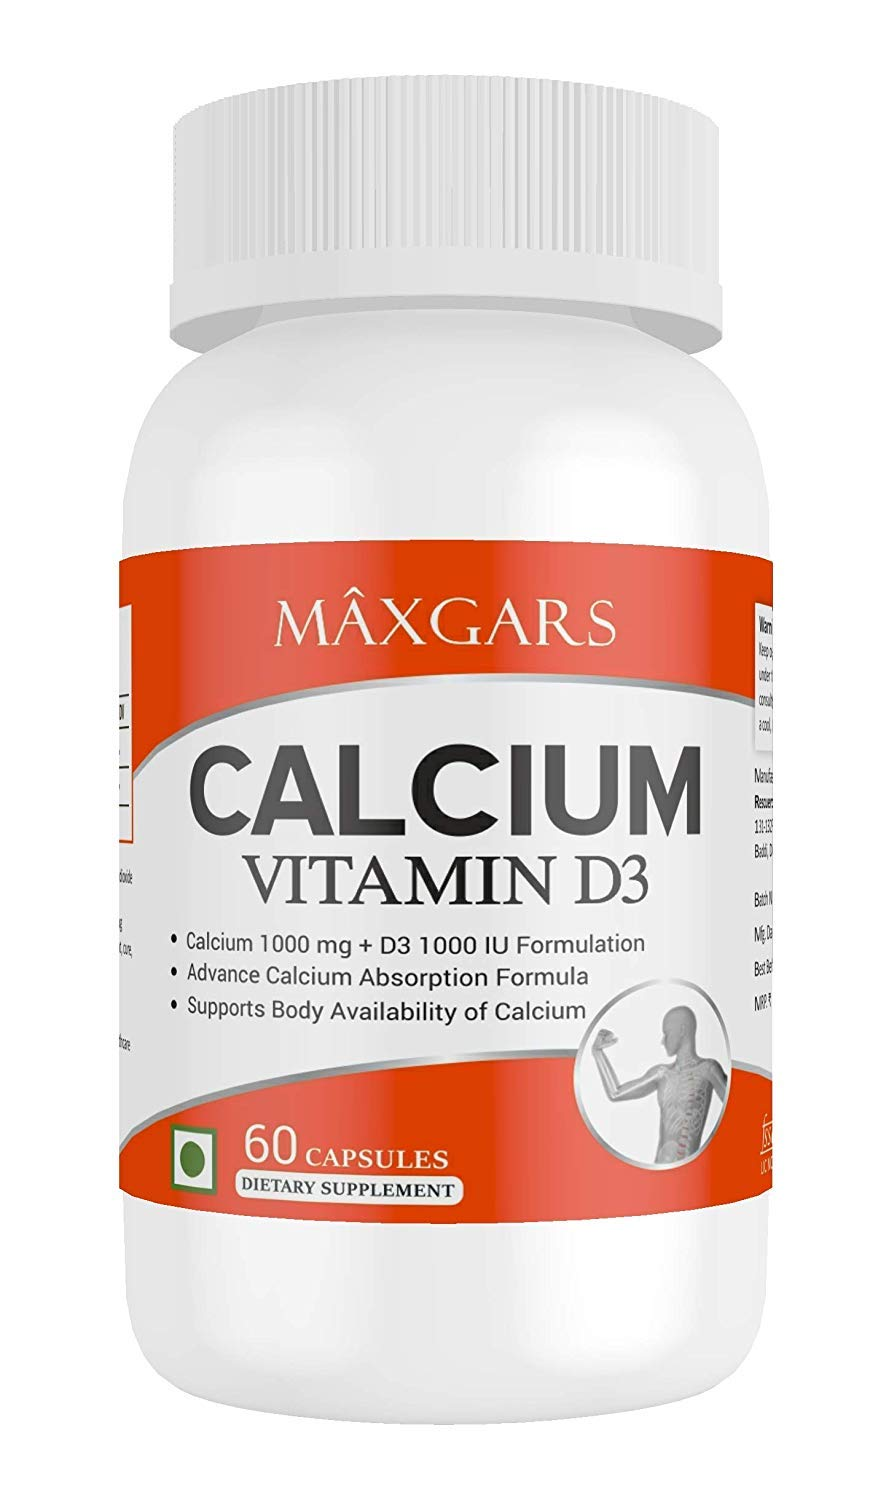 Maxgars Calcium with Vitamin D3 with Calcium 1000 mg and Vitamin D3 1000IU (60 Capsules; 30 Servings)